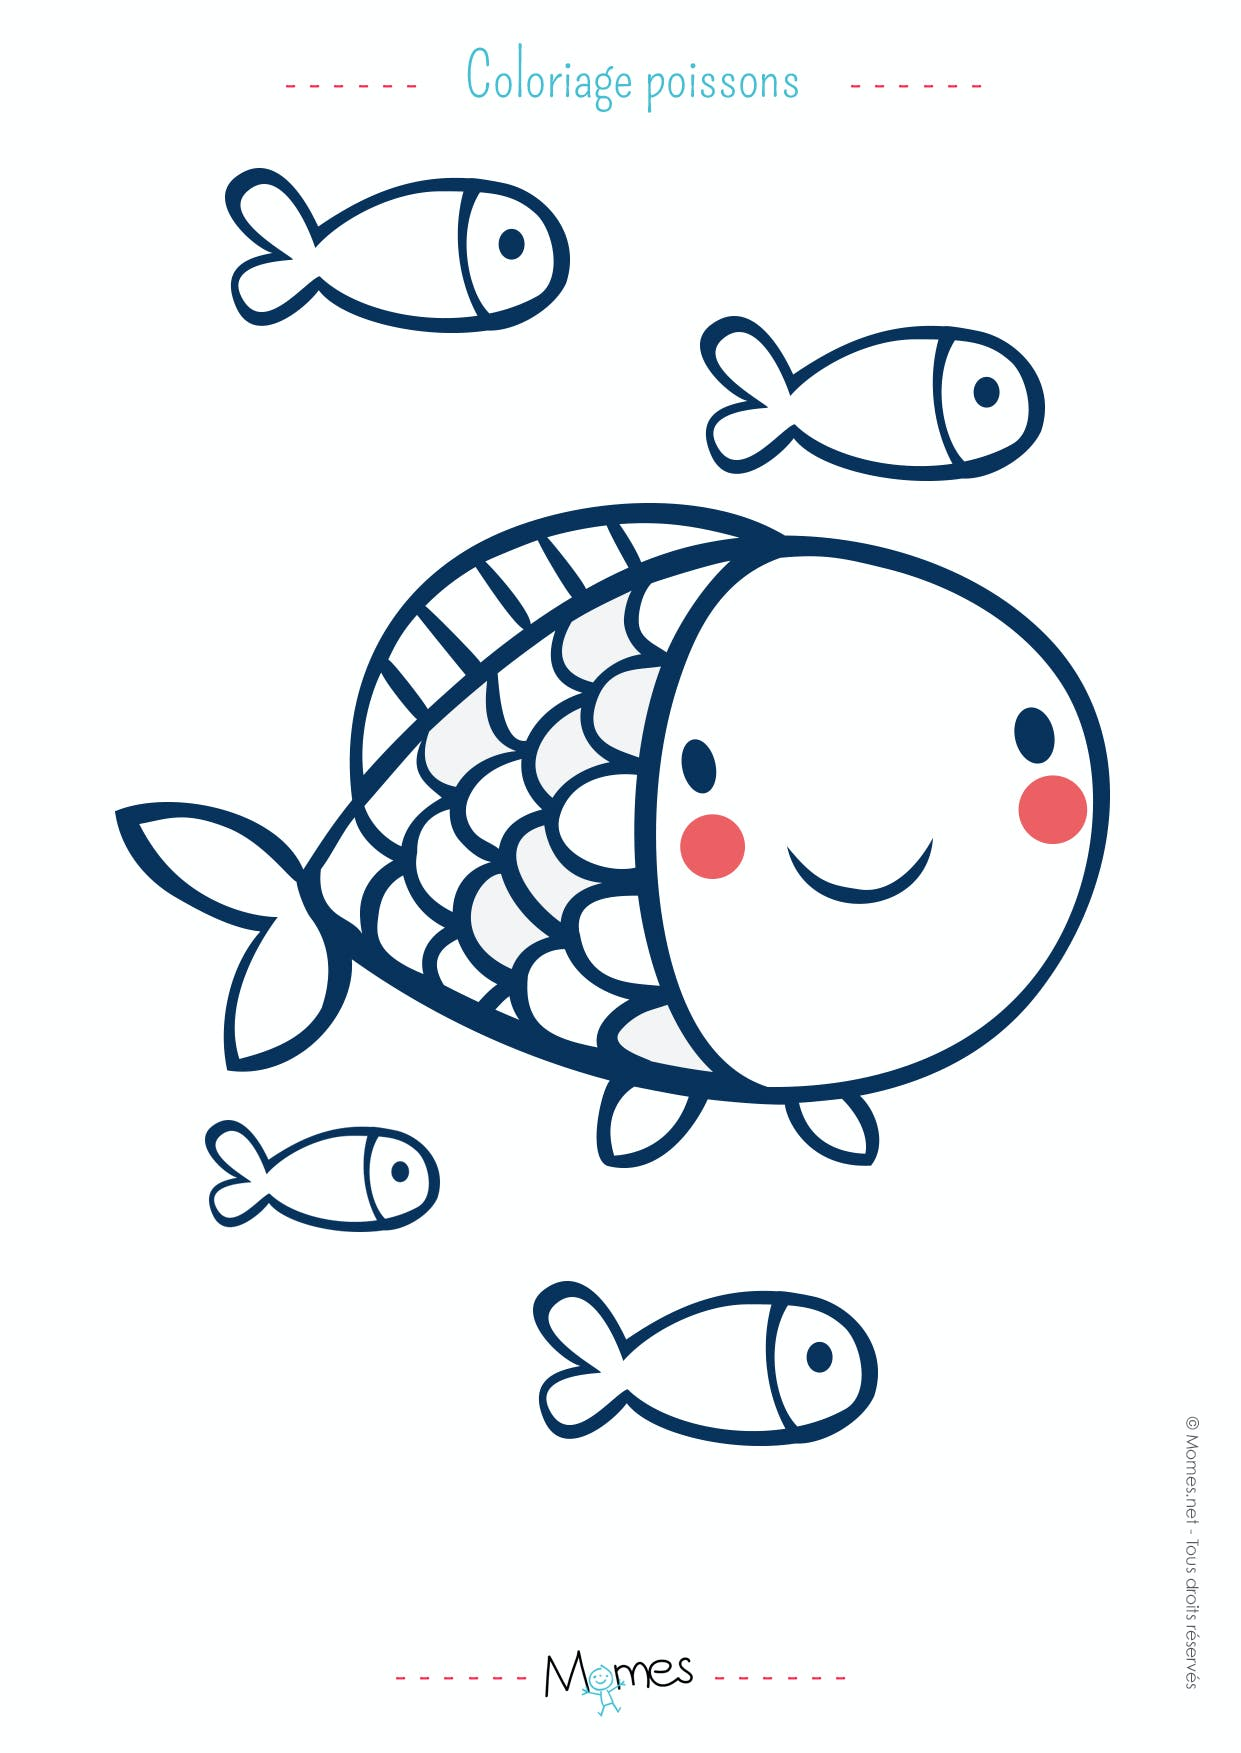 Coloriage poisson d'avril